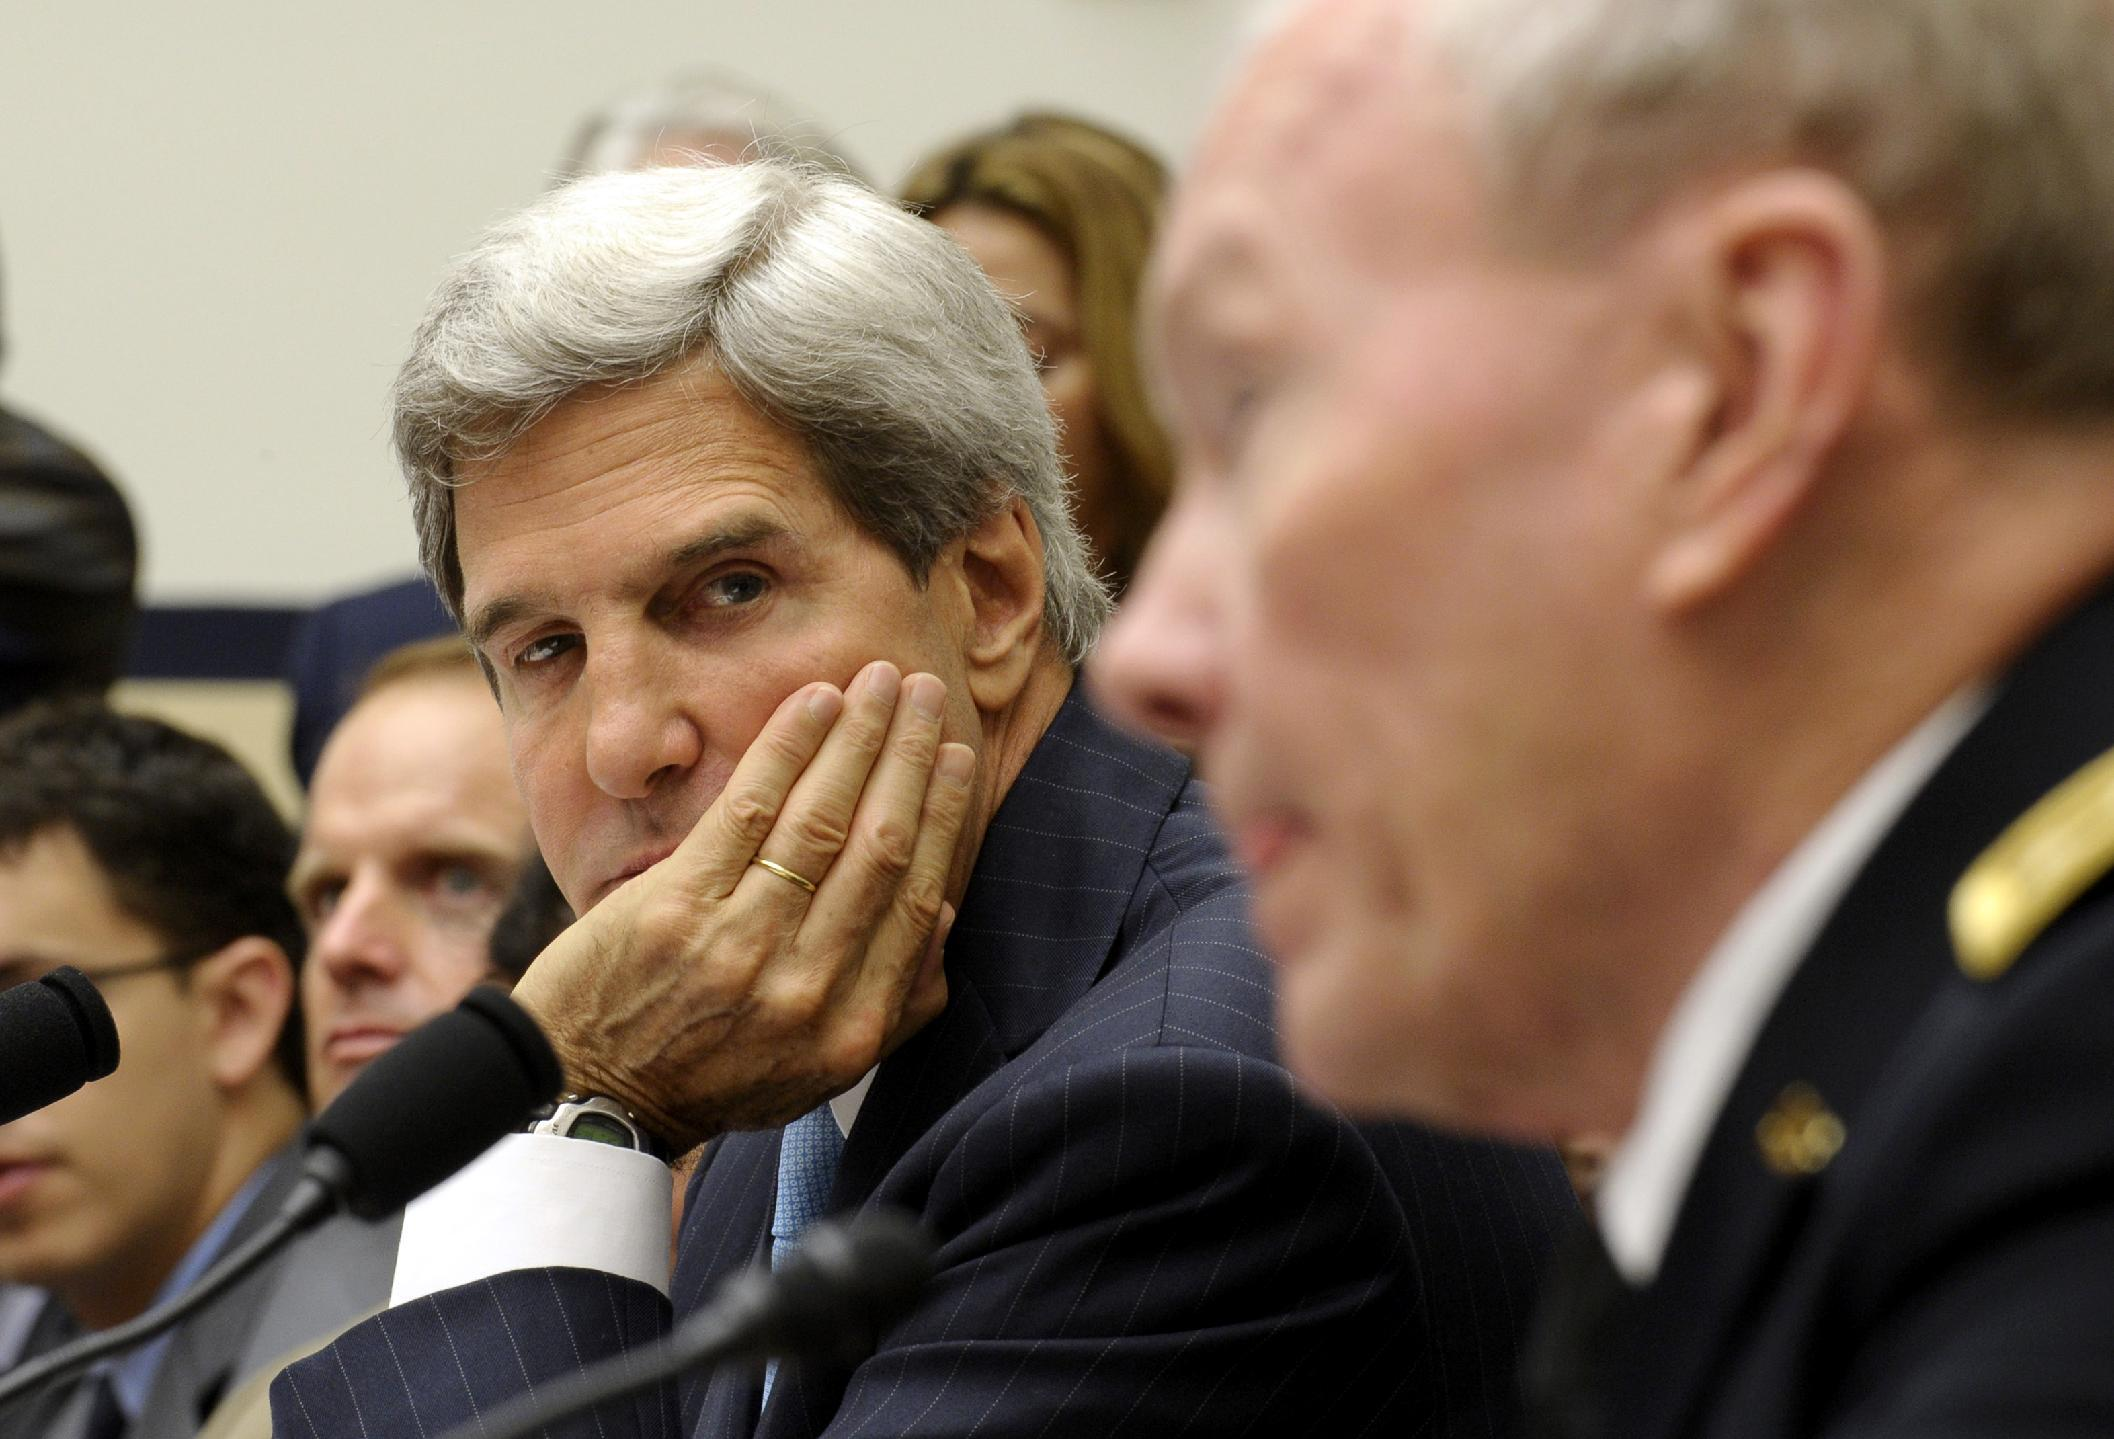 Secretary of State John Kerry listens at left as Joint Chiefs Chairman Gen. Martin Dempsey, right, speaks during a House Armed Services Committee hearing on Syria, Tuesday, Sept. 10, 2013, on Capitol Hill in Washington. (AP Photo/Susan Walsh)